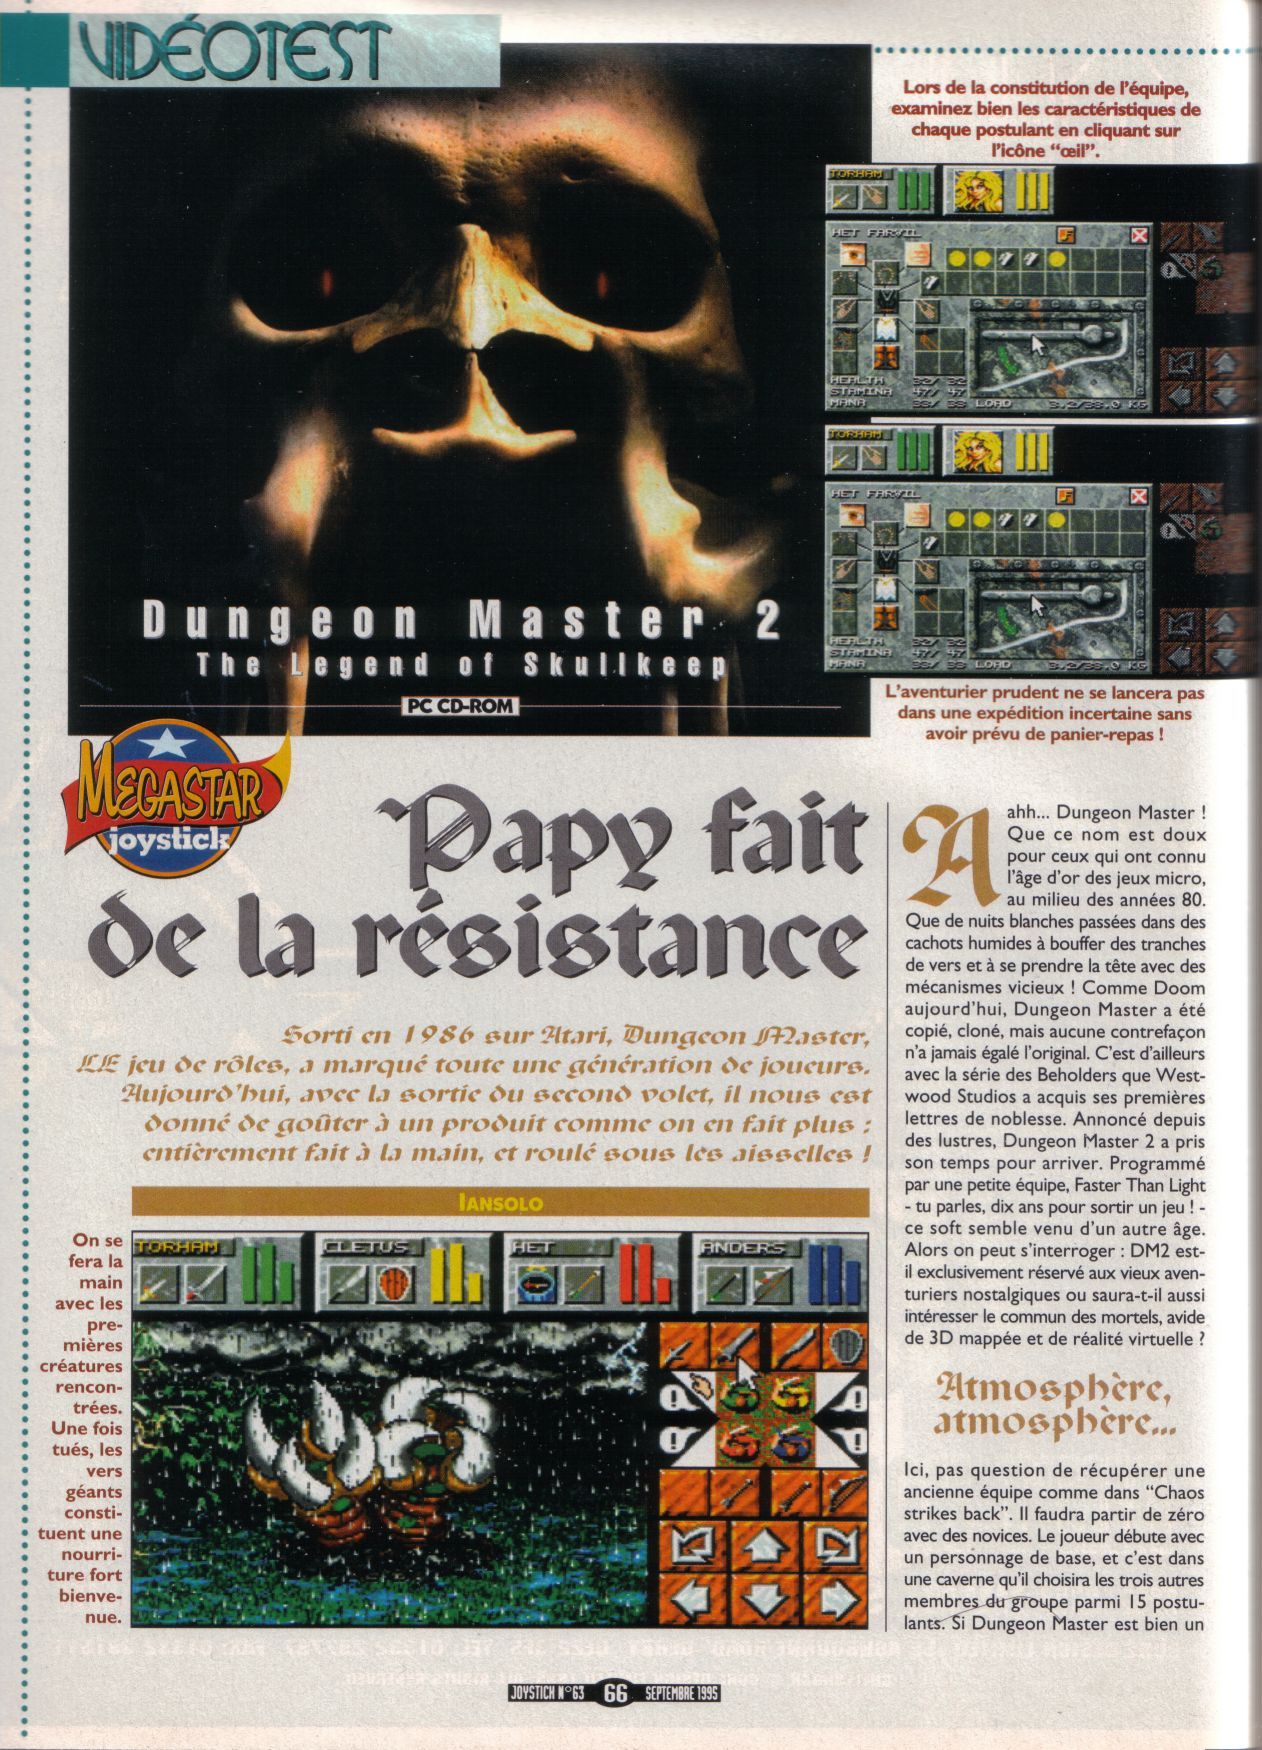 Dungeon Master II for PC Review published in French magazine 'Joystick', Issue #63, September 1995, Page 66